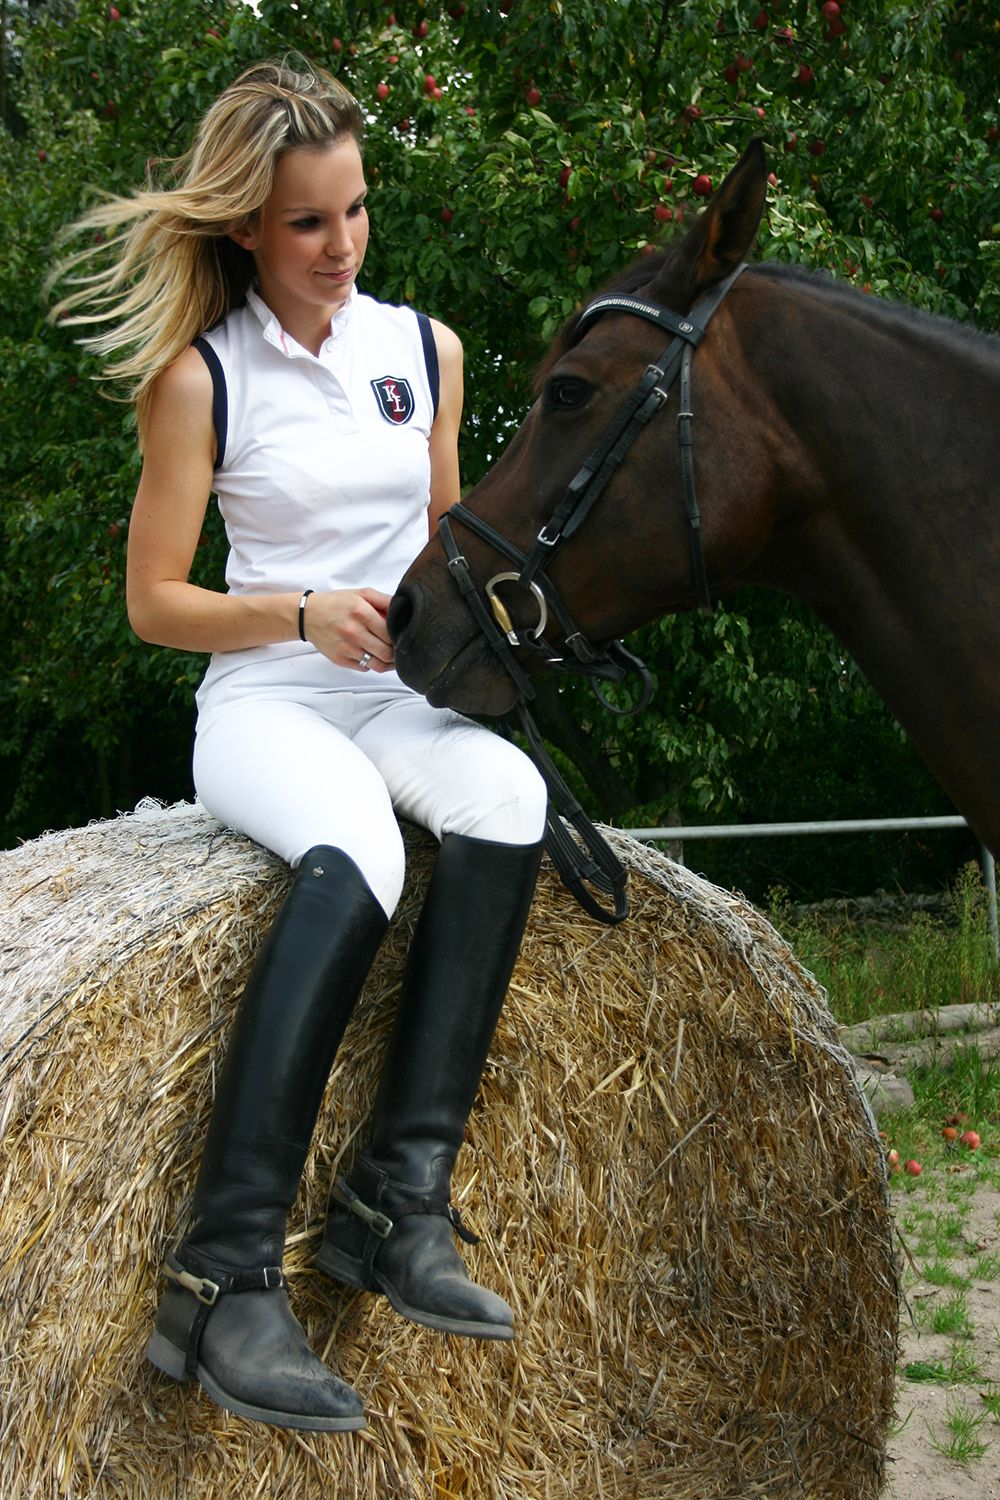 Pin by Andreas Meyer on sexy women in riding boots | Horse ...